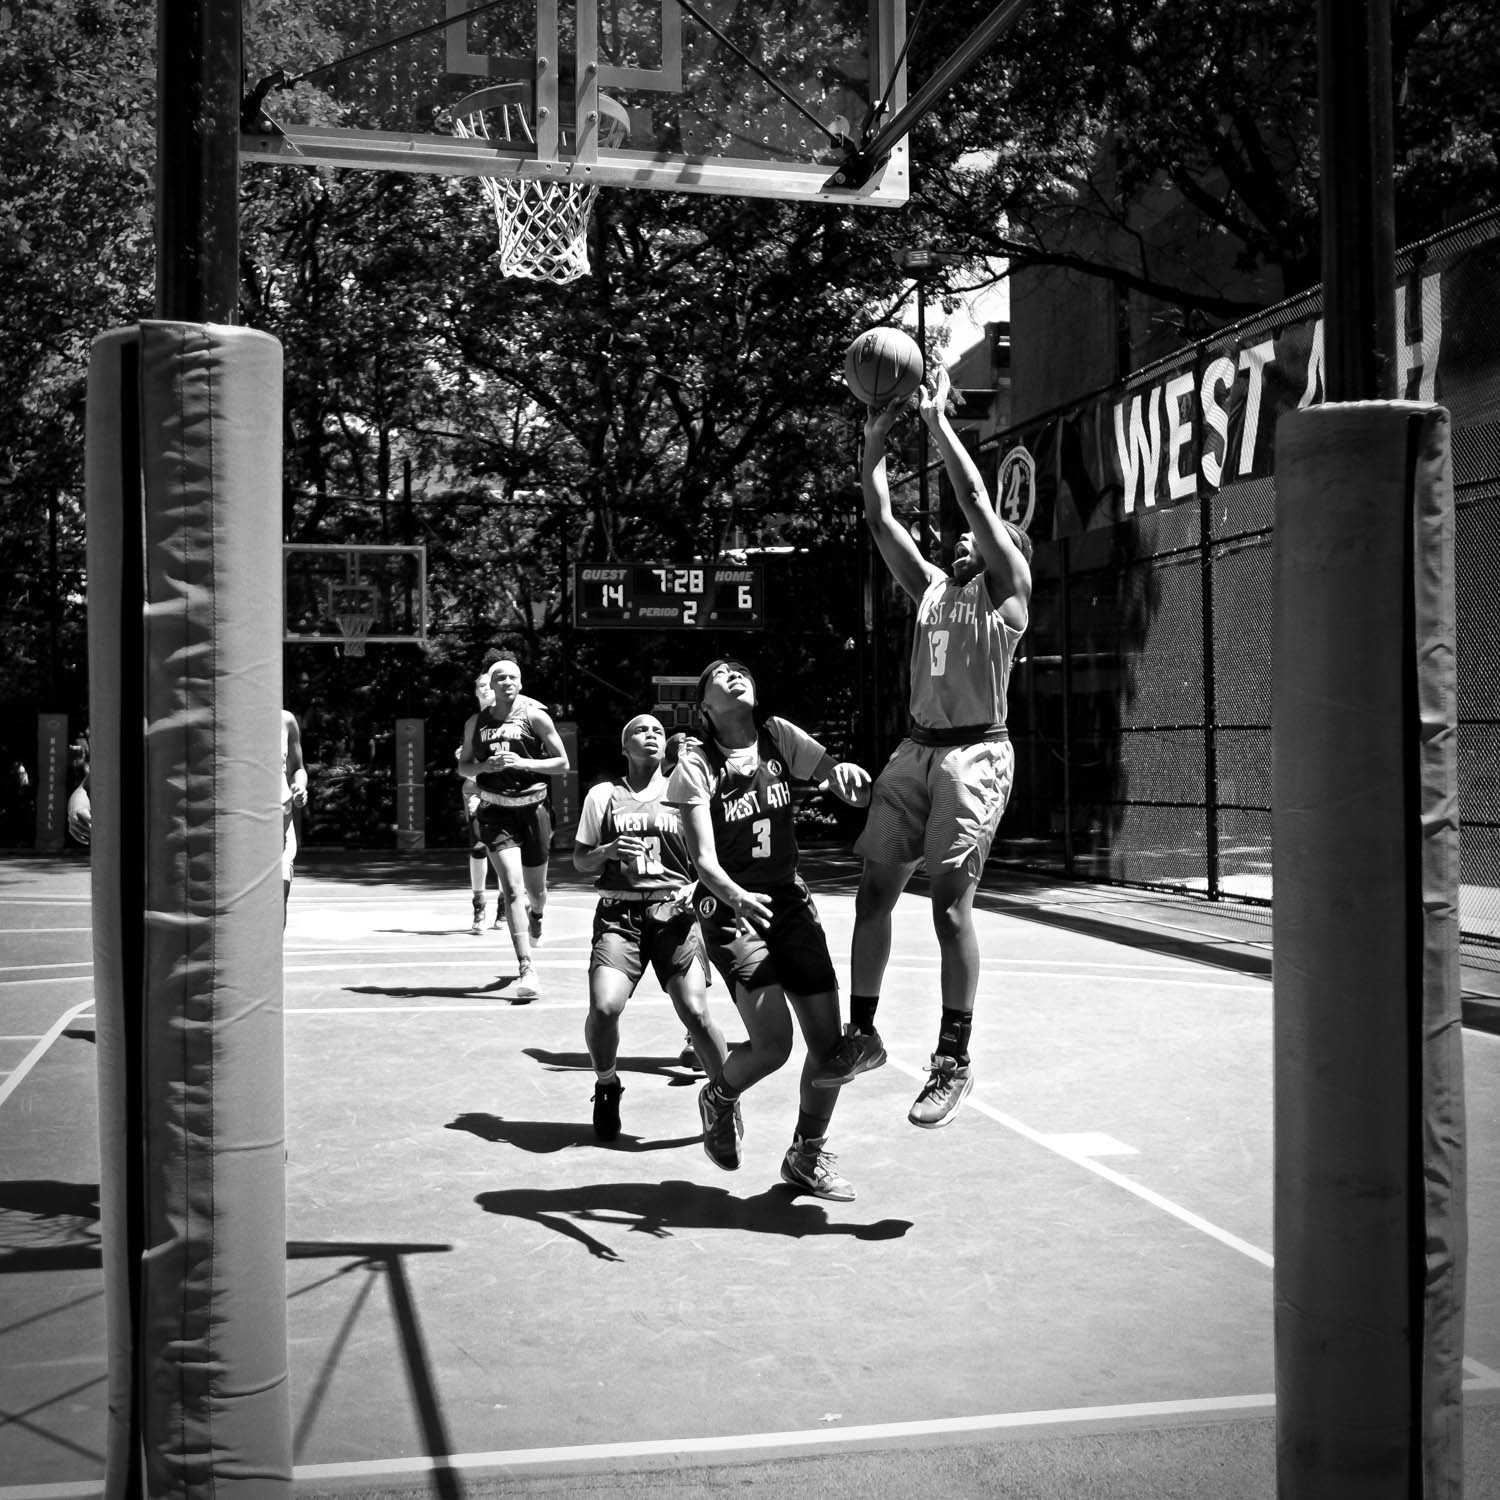 West 4th Street Basketball